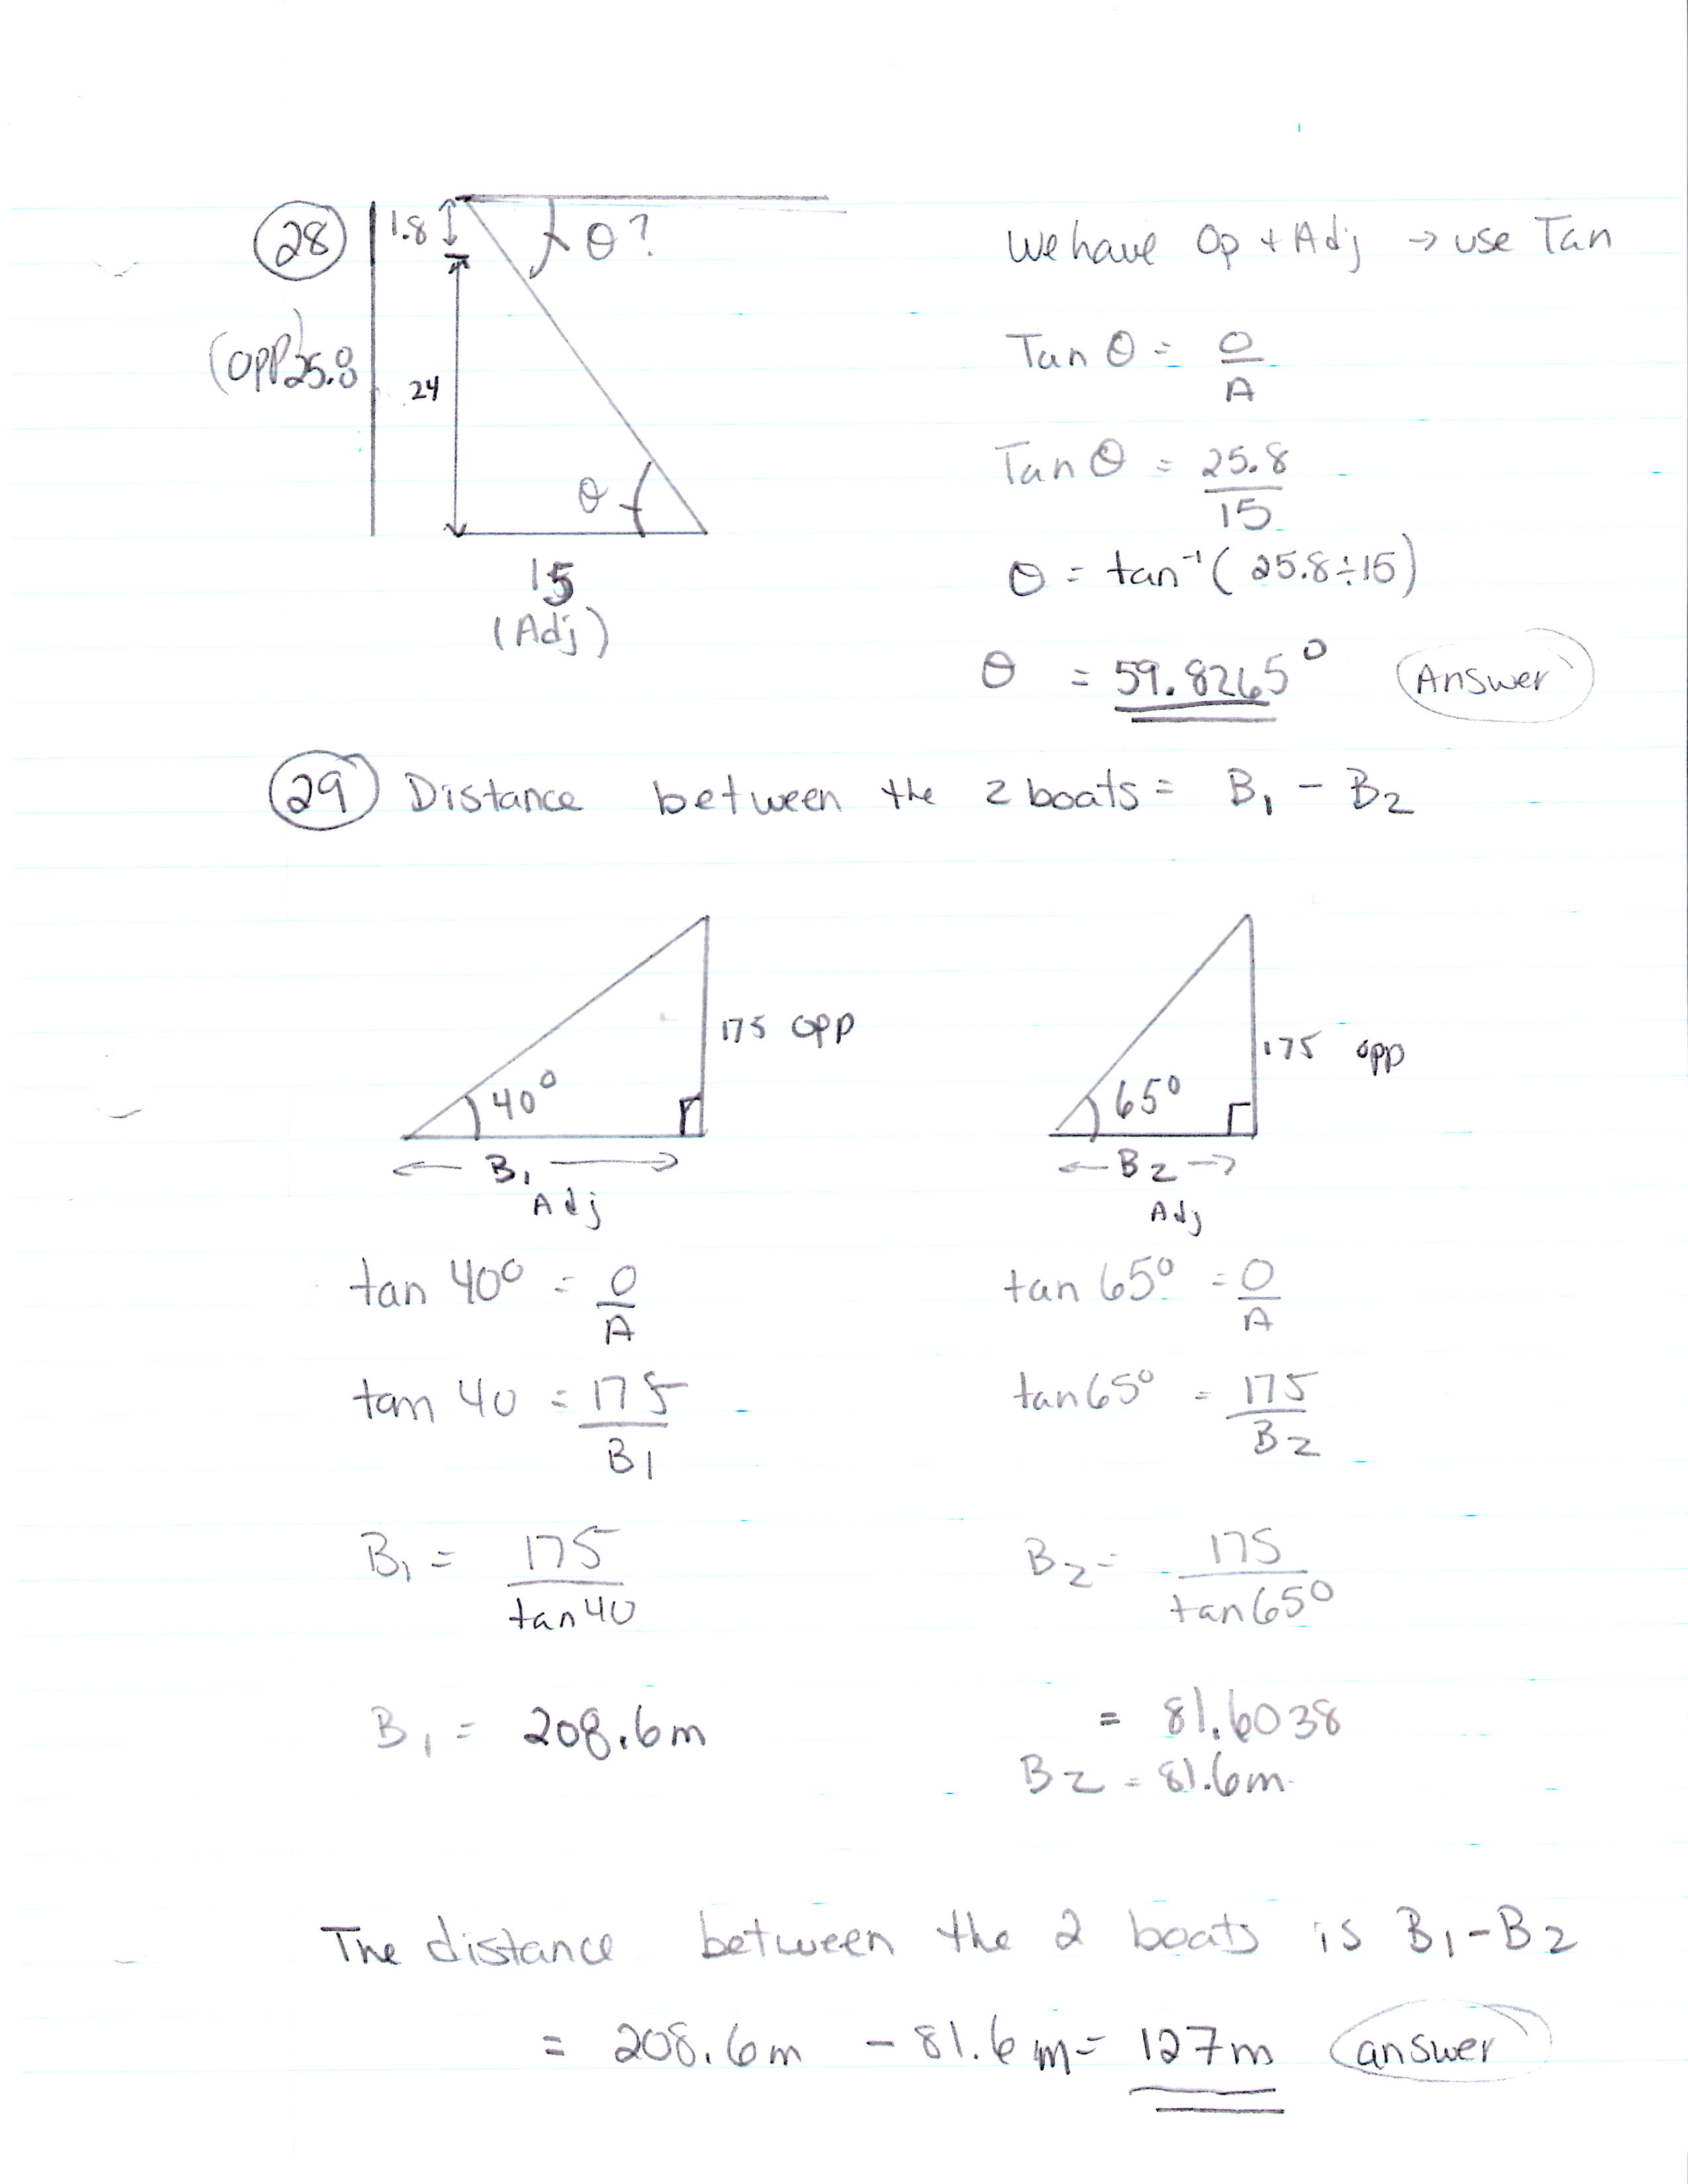 trigonometry word problems worksheets Worksheets for Kids – Right Triangle Word Problems Worksheet